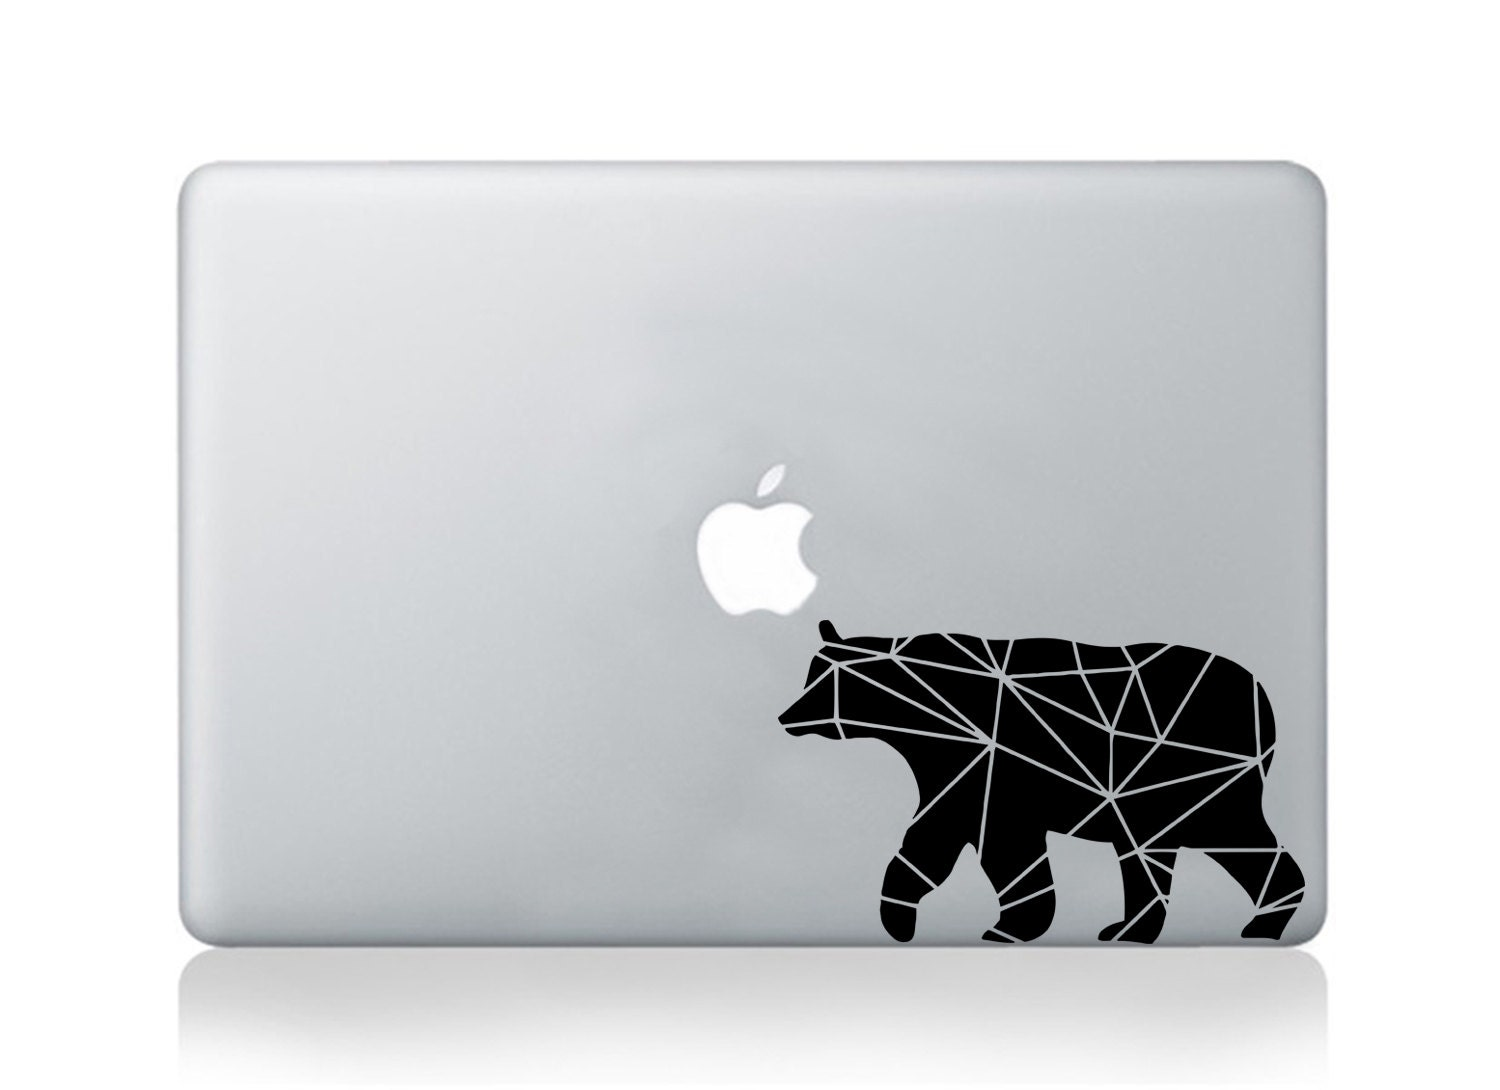 Macbook decal pro air geometrical vinyl sticker bear decal mural transfer graphic art laptop notebook skin Asus HP Toshiba Dell decal